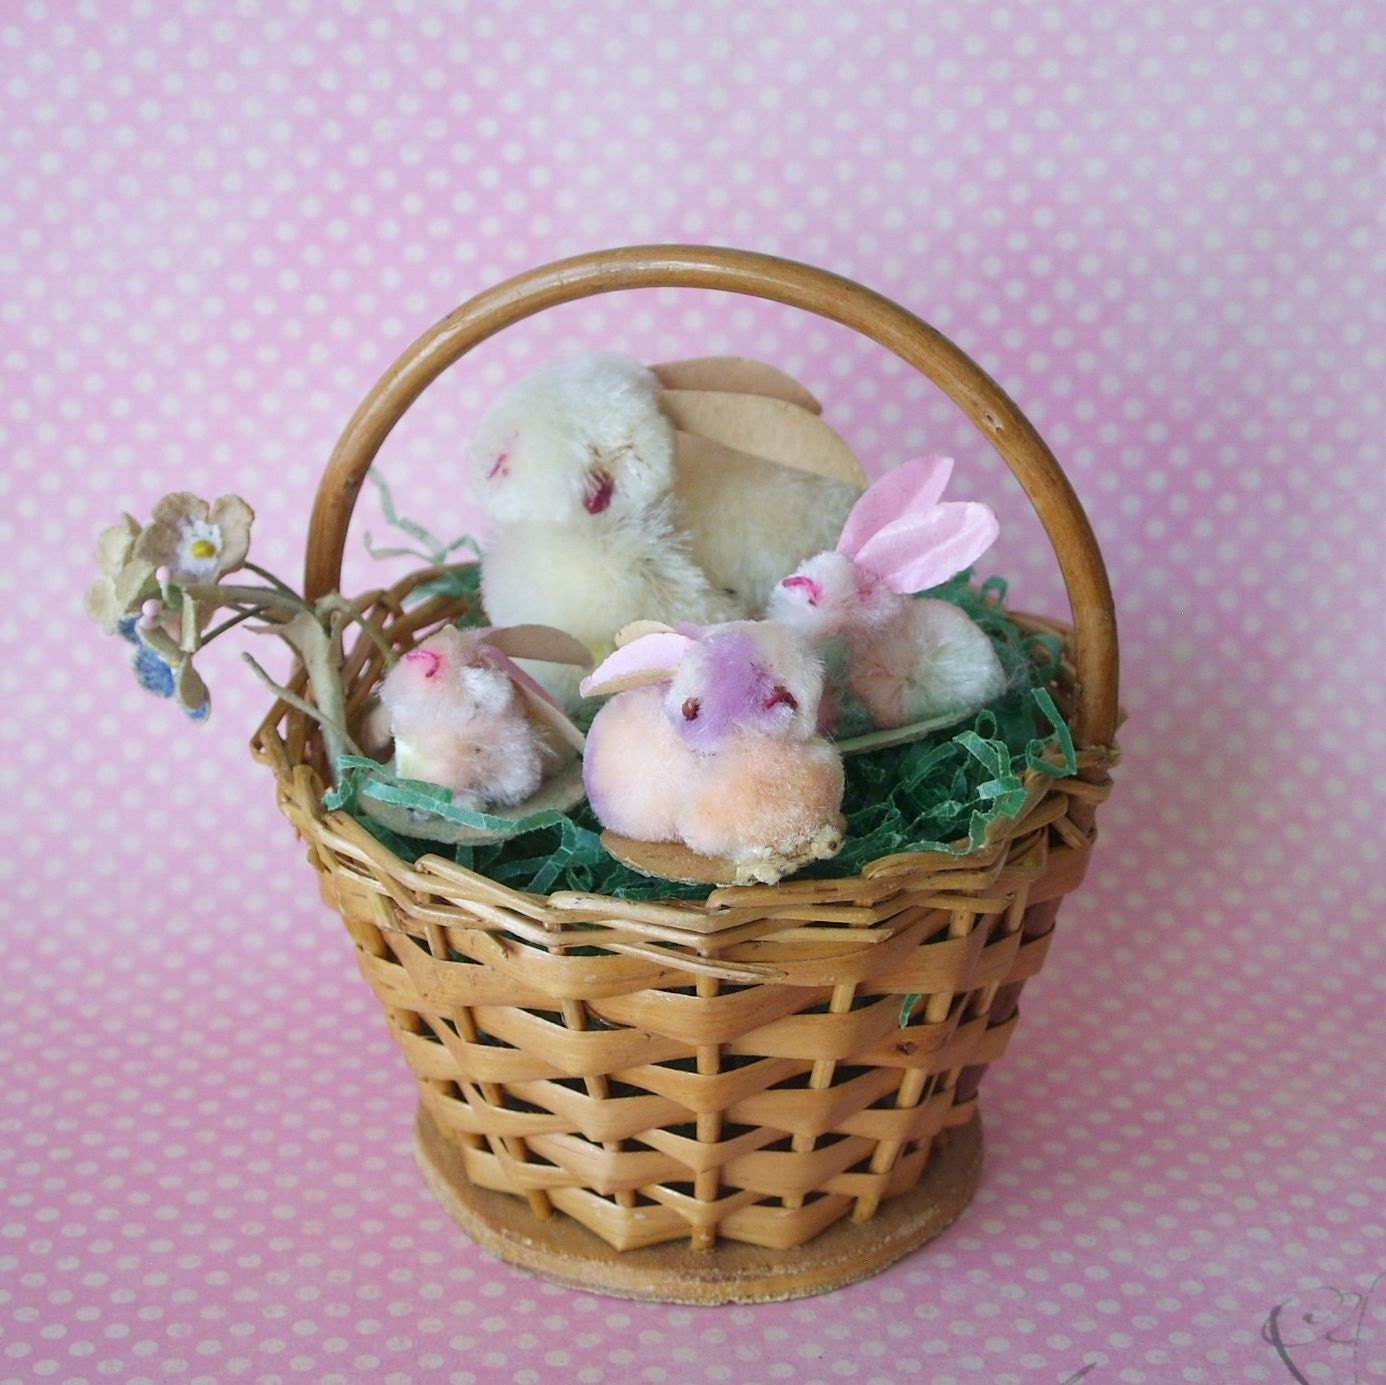 Basket full of Vintage Chenille Easter Bunnies